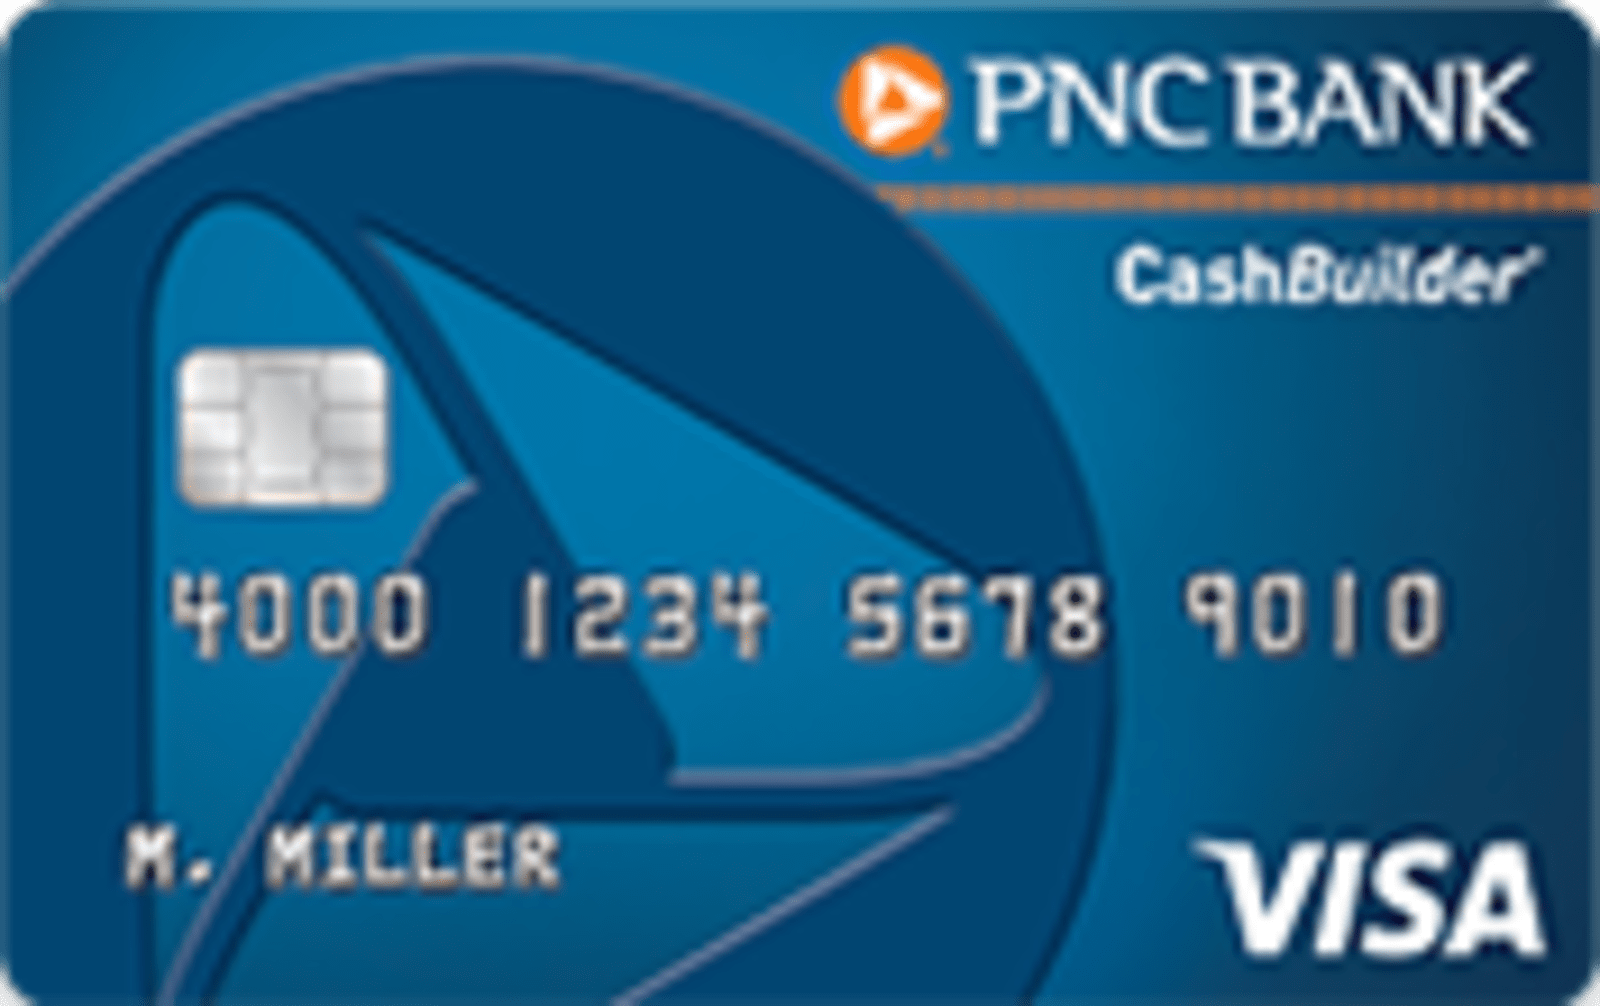 PNC CashBuilder® Visa Credit Card | Credit Card Review - ValuePenguin